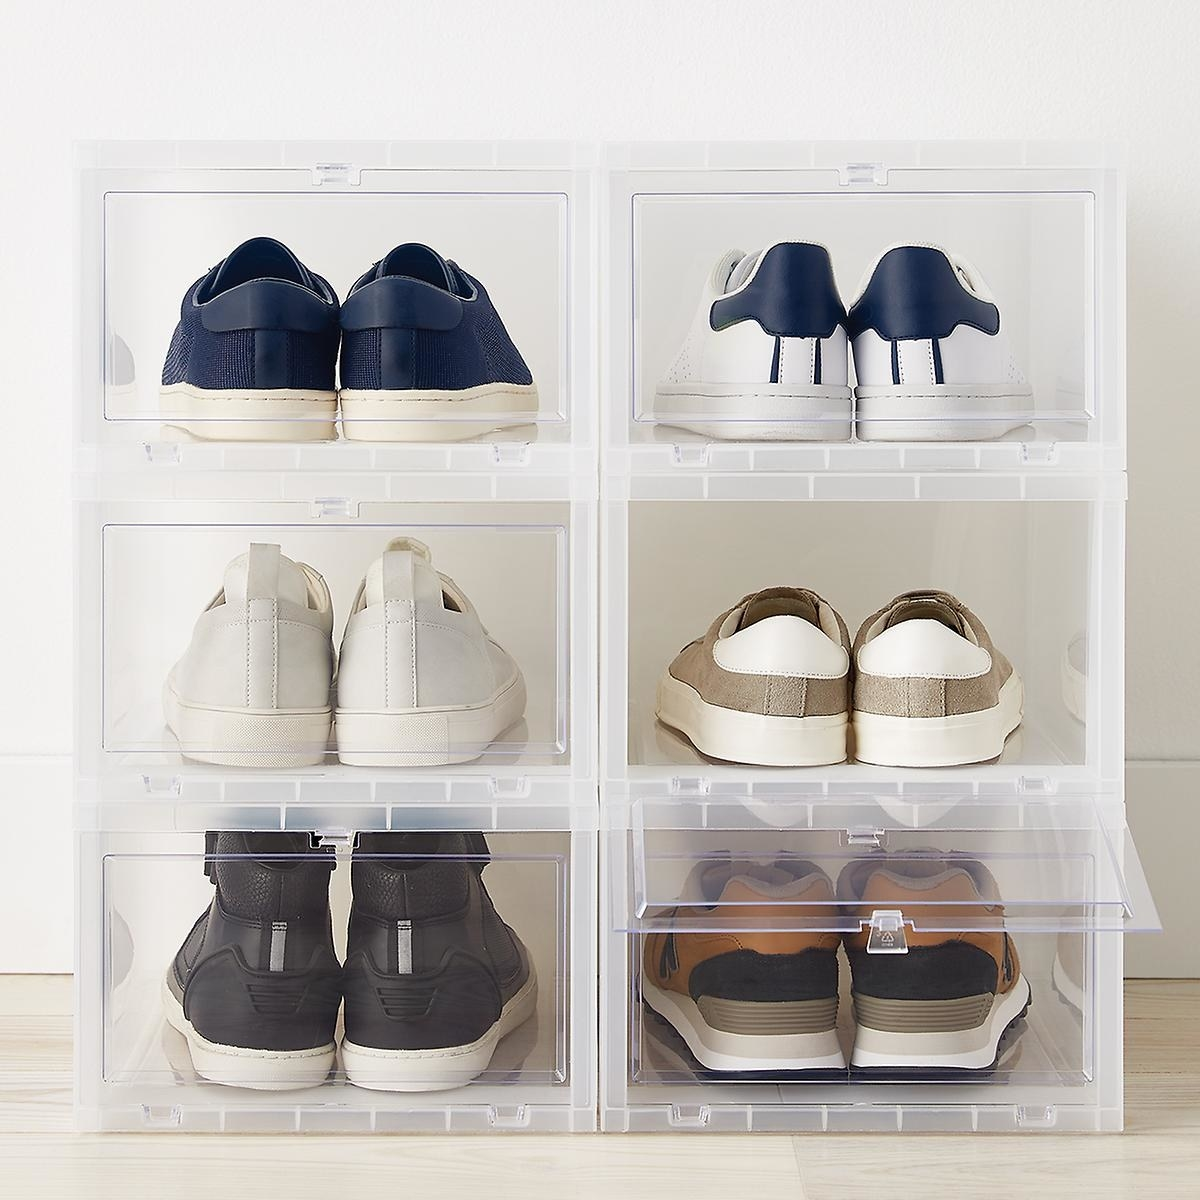 The shoe container holding six shoes